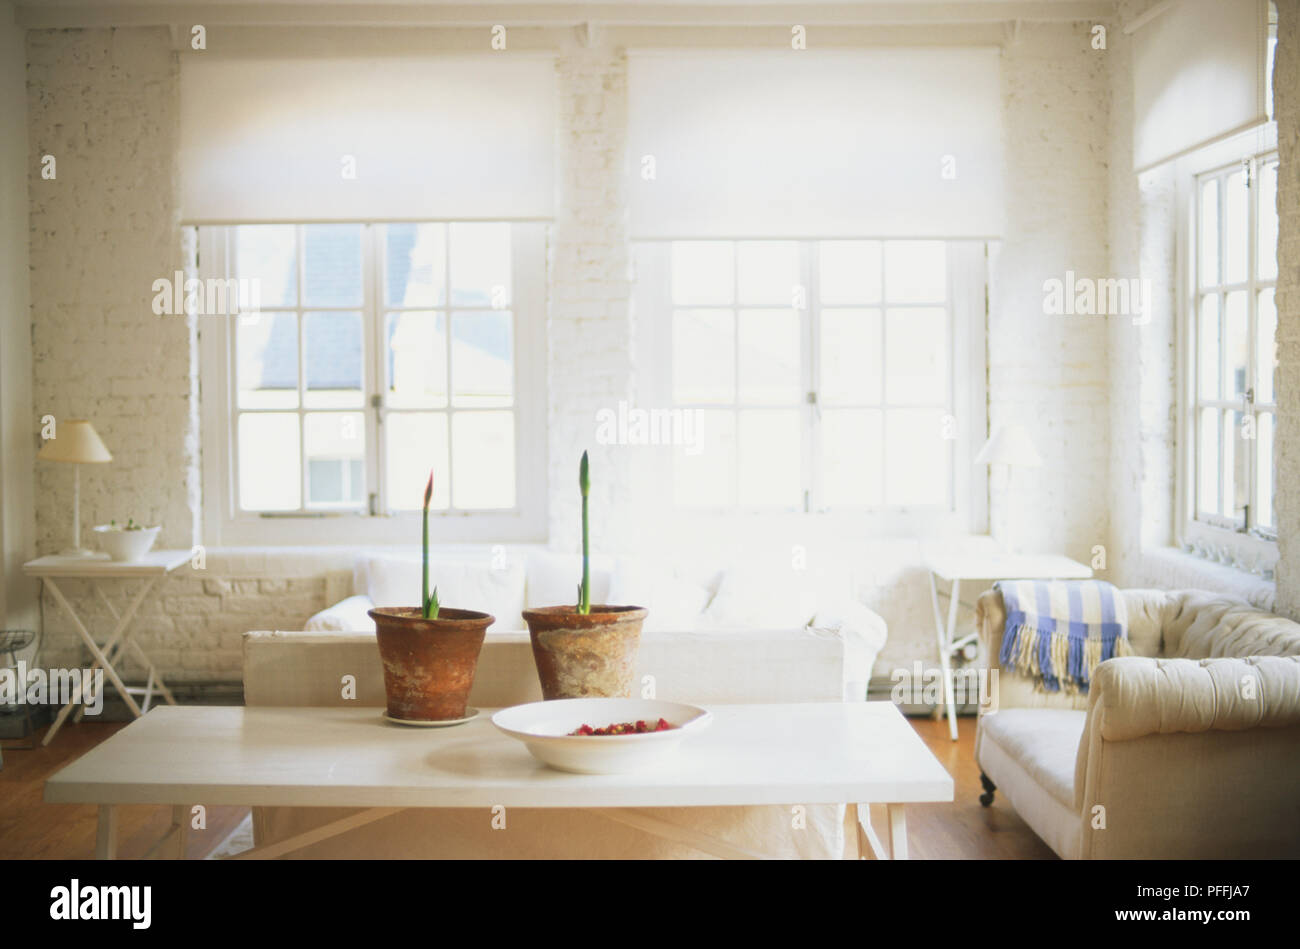 Converted warehouse interior with white-washed brick walls, enormous windows with blinds, simply furnished with white settees and coffee table with plants and pot-pourri. - Stock Image